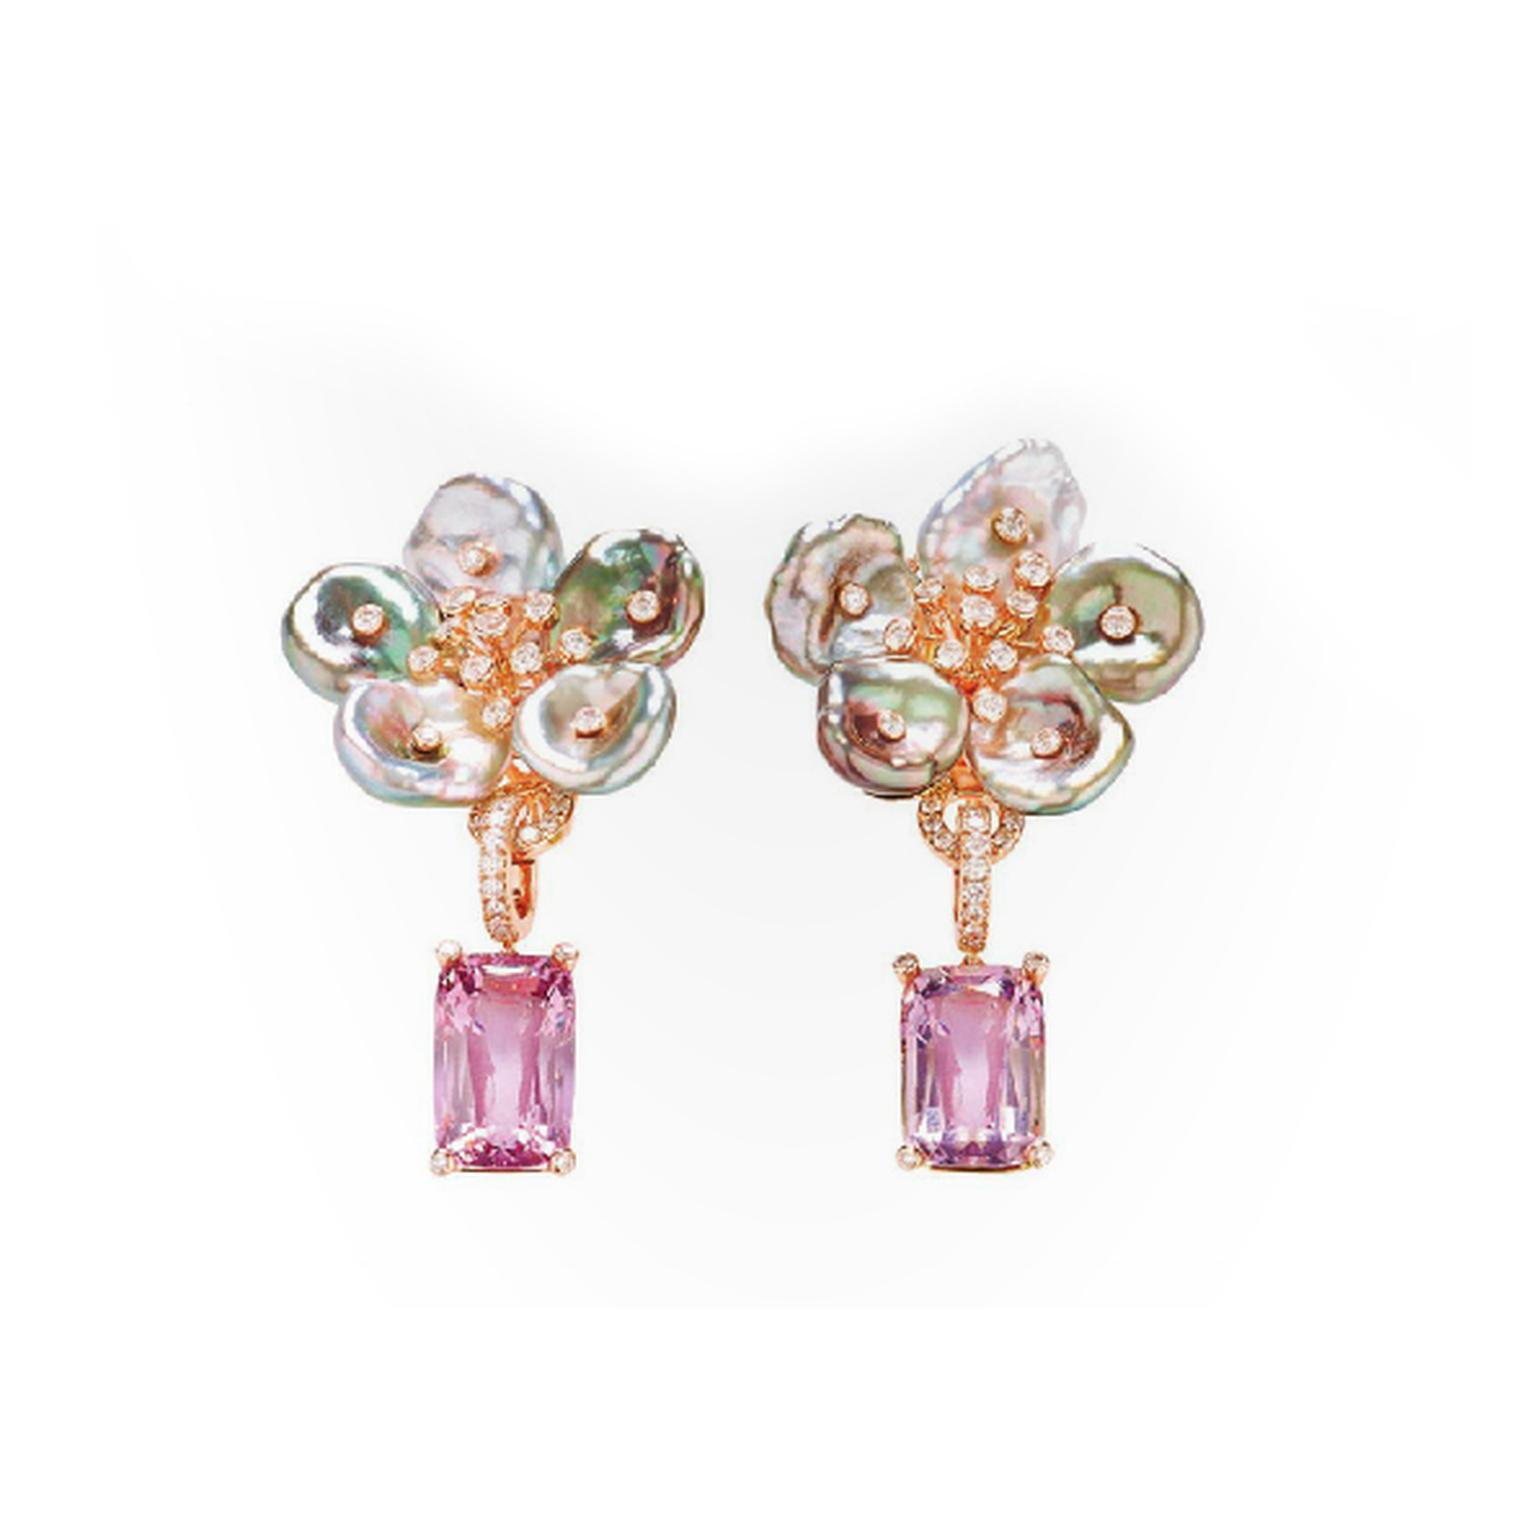 Margot McKinney Tahitian keshi pearl and diamond flower earrings with Lavender Champagne spinel drops